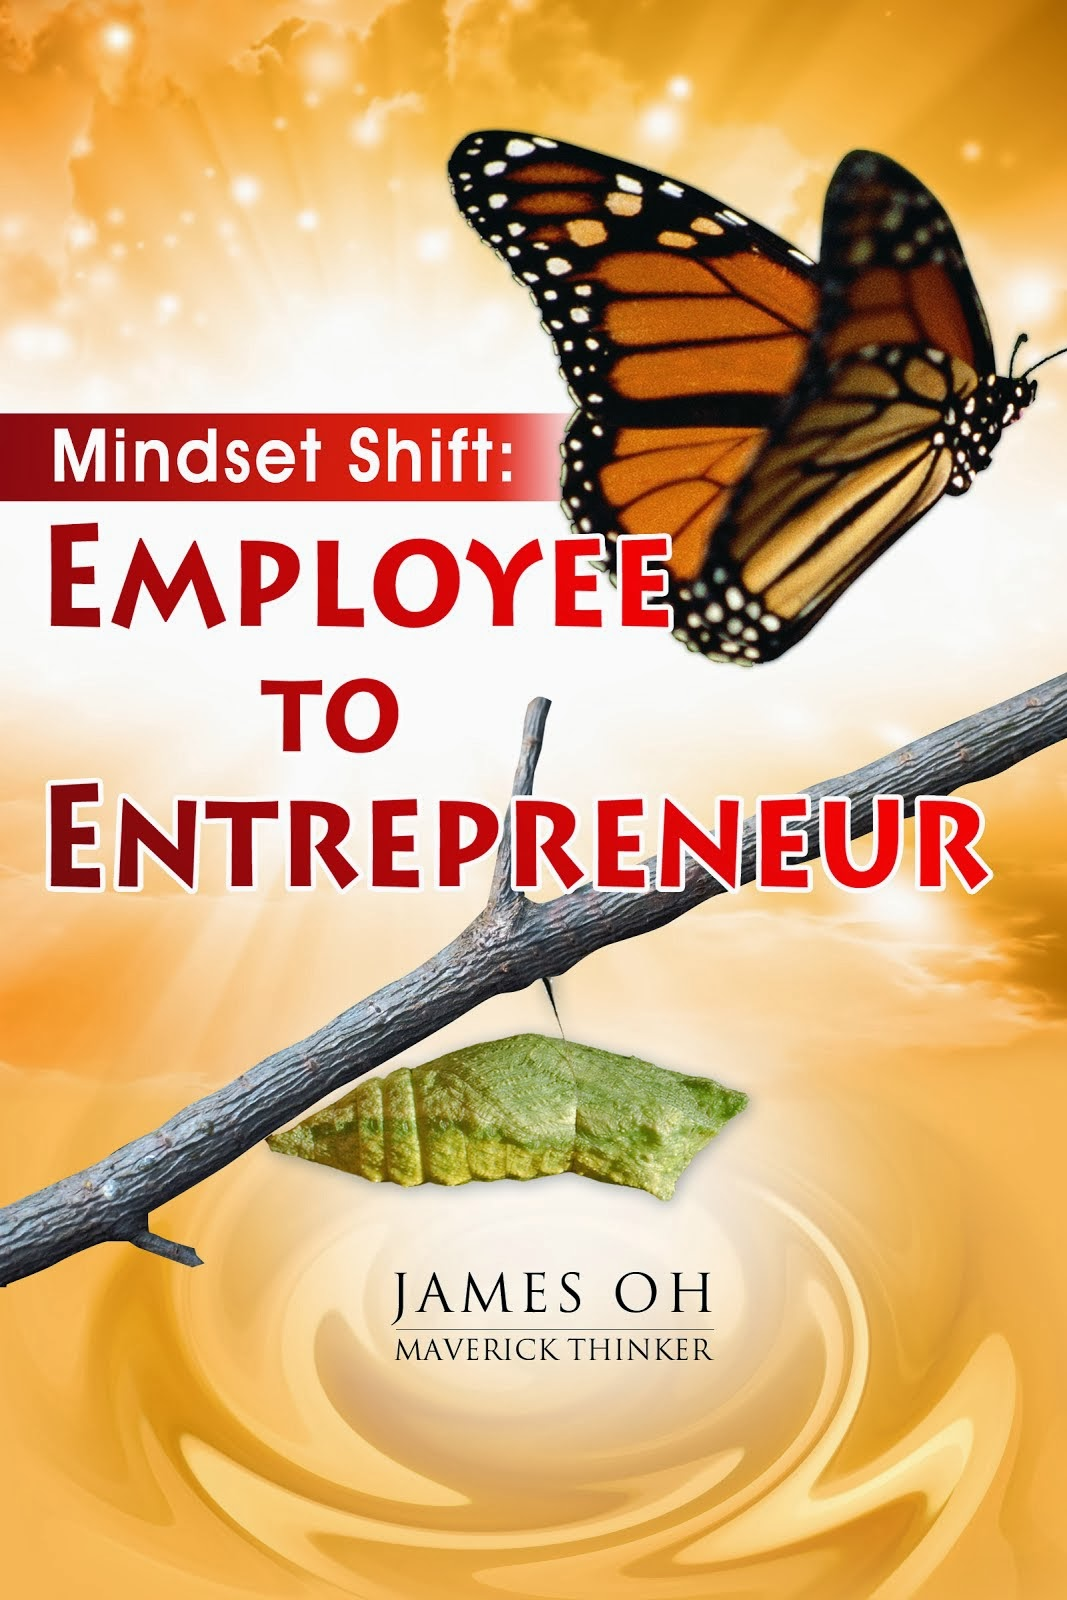 MINDSET SHIFT : EMPLOYEE TO ENTREPRENEUR